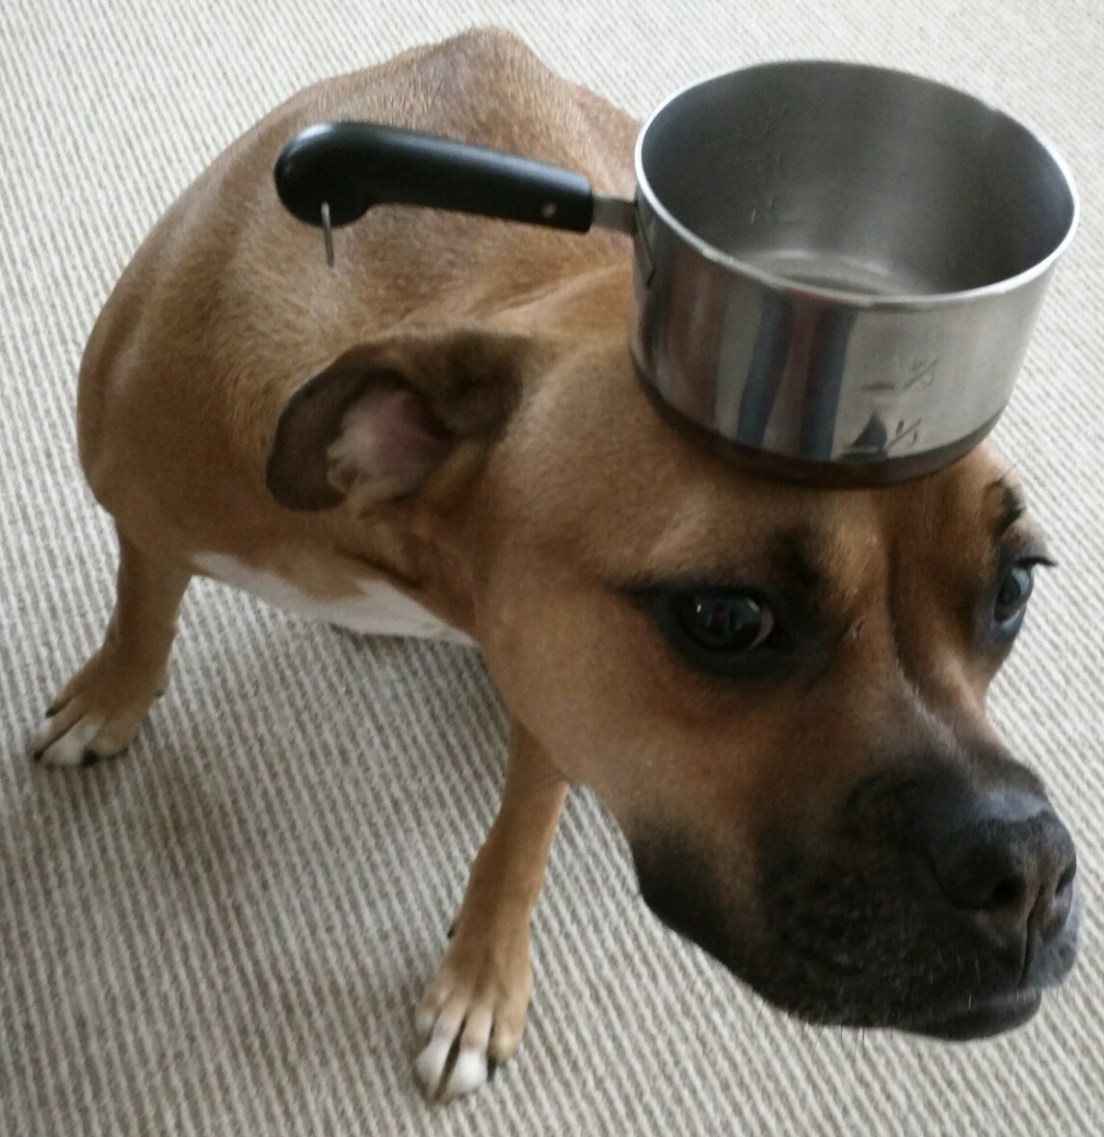 dog with pot on head